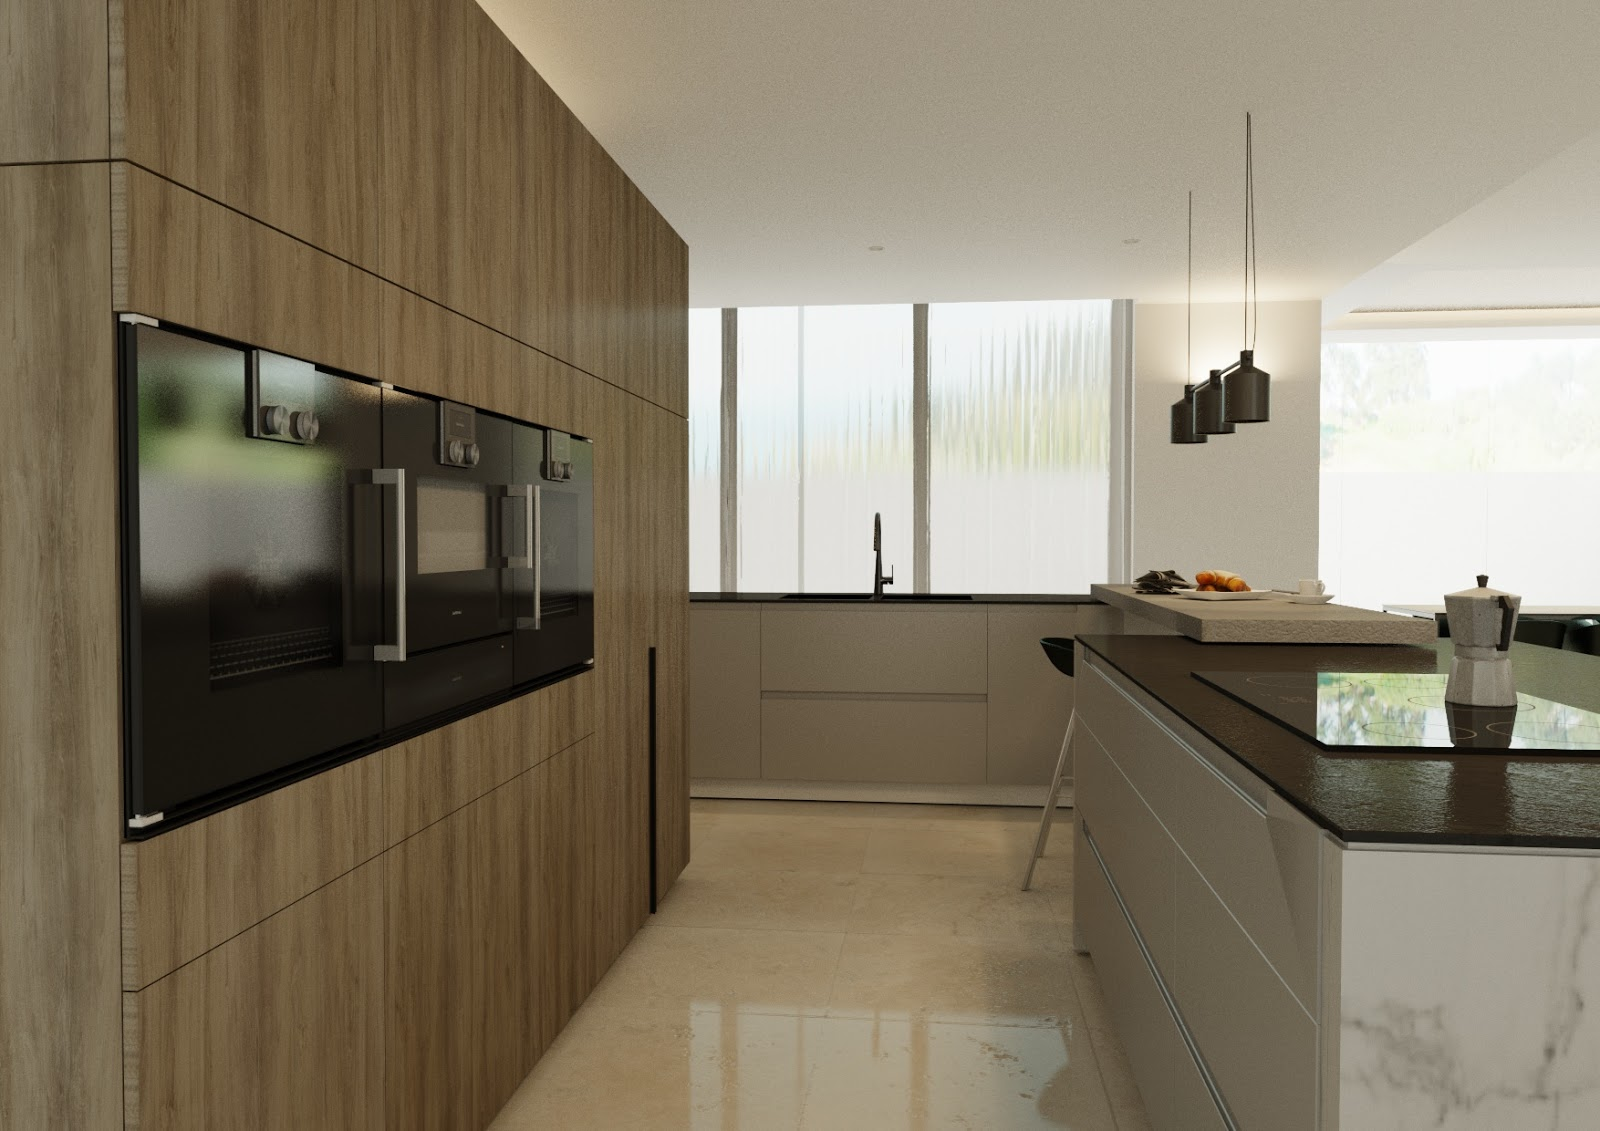 Active And Passive, This Is A Very Large Part Of The Modern Kitchen Design,  Having Areas That Are Passive Such As Access To Cups Which Are Directly  Located ...